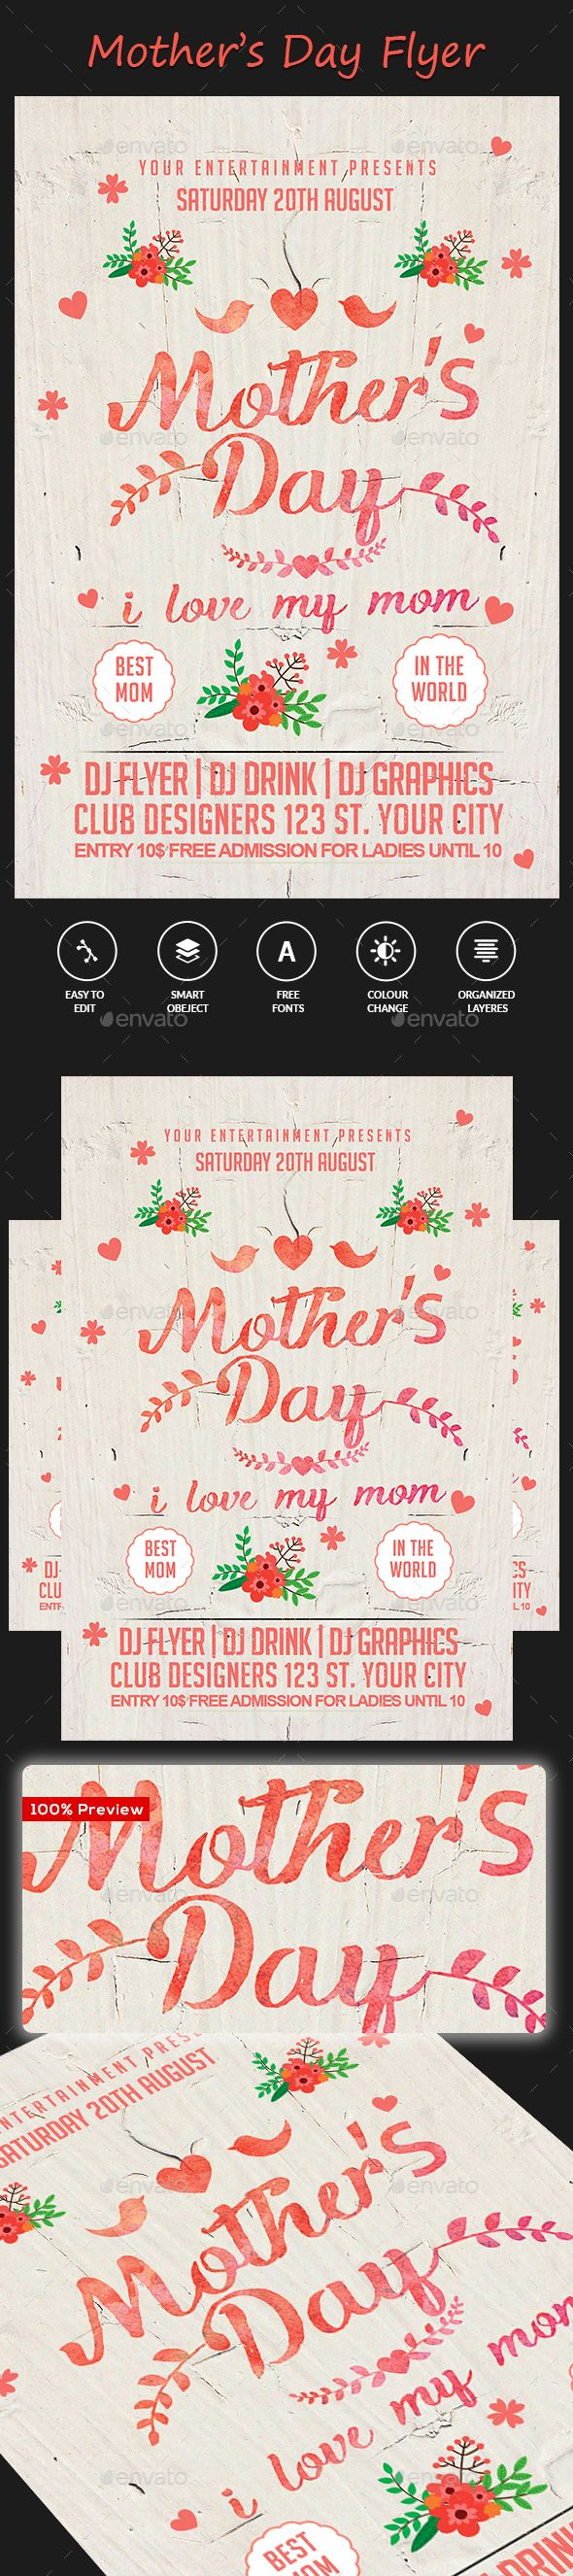 MotherS Day Flyer Template  Flyer Template Fonts And Font Logo